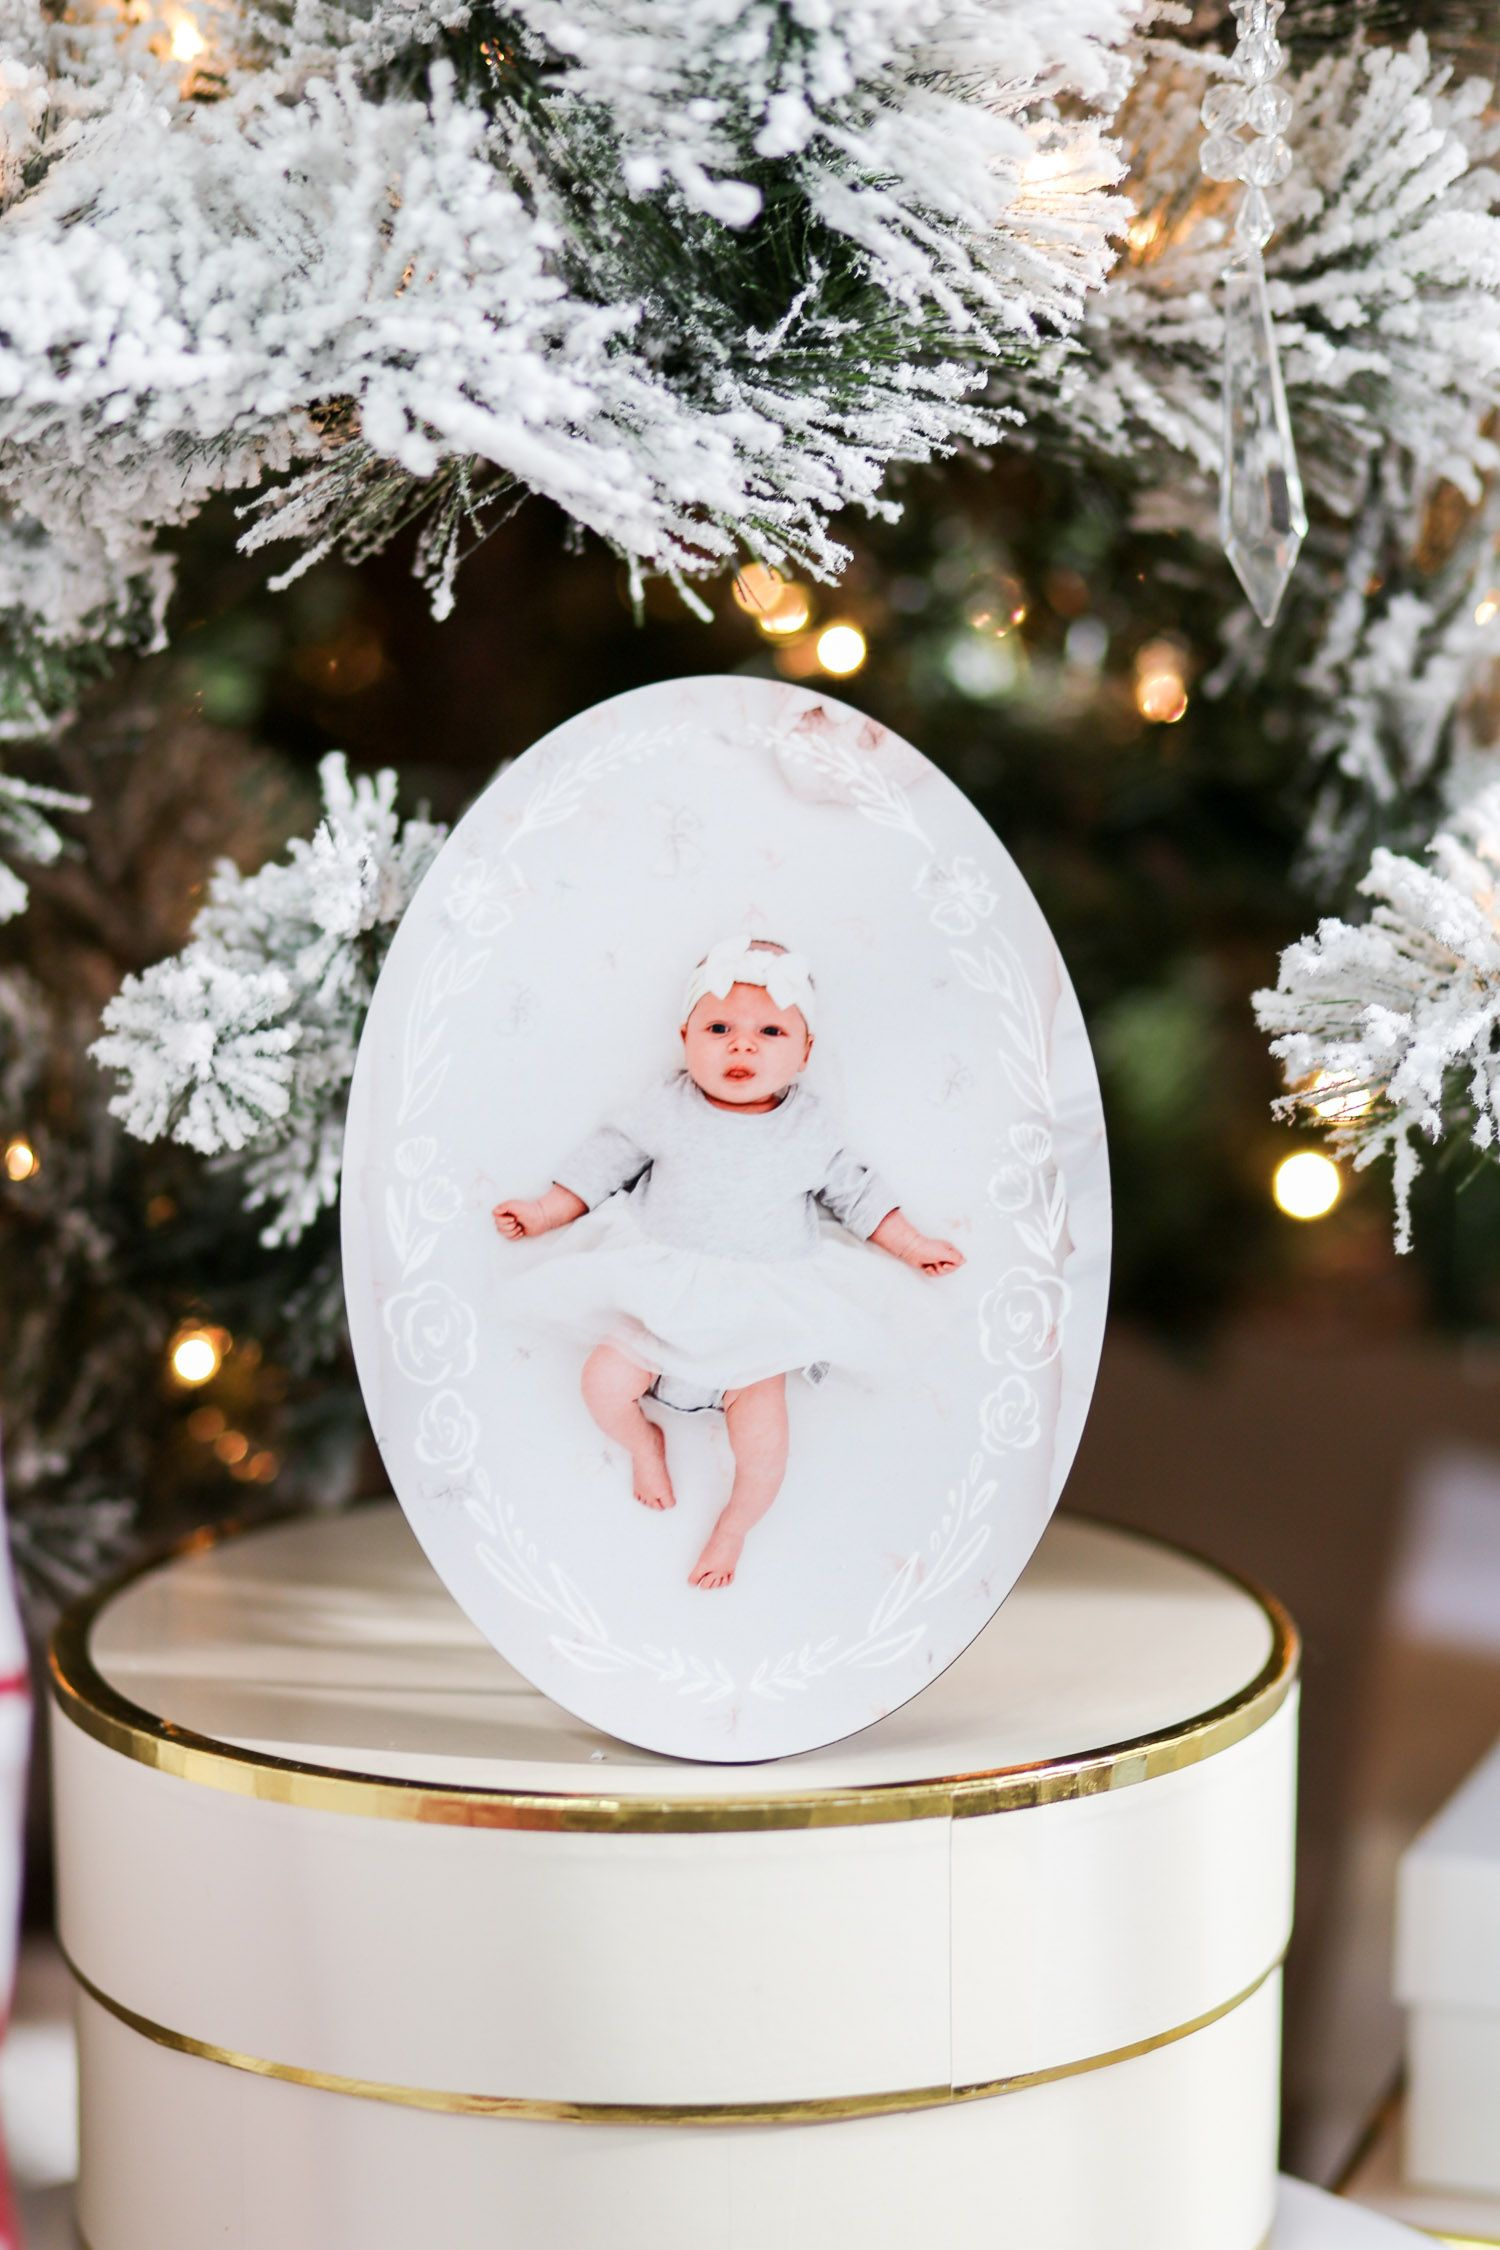 Personalized Christmas Gift Ideas from Shutterfly | Christmas Gift ...